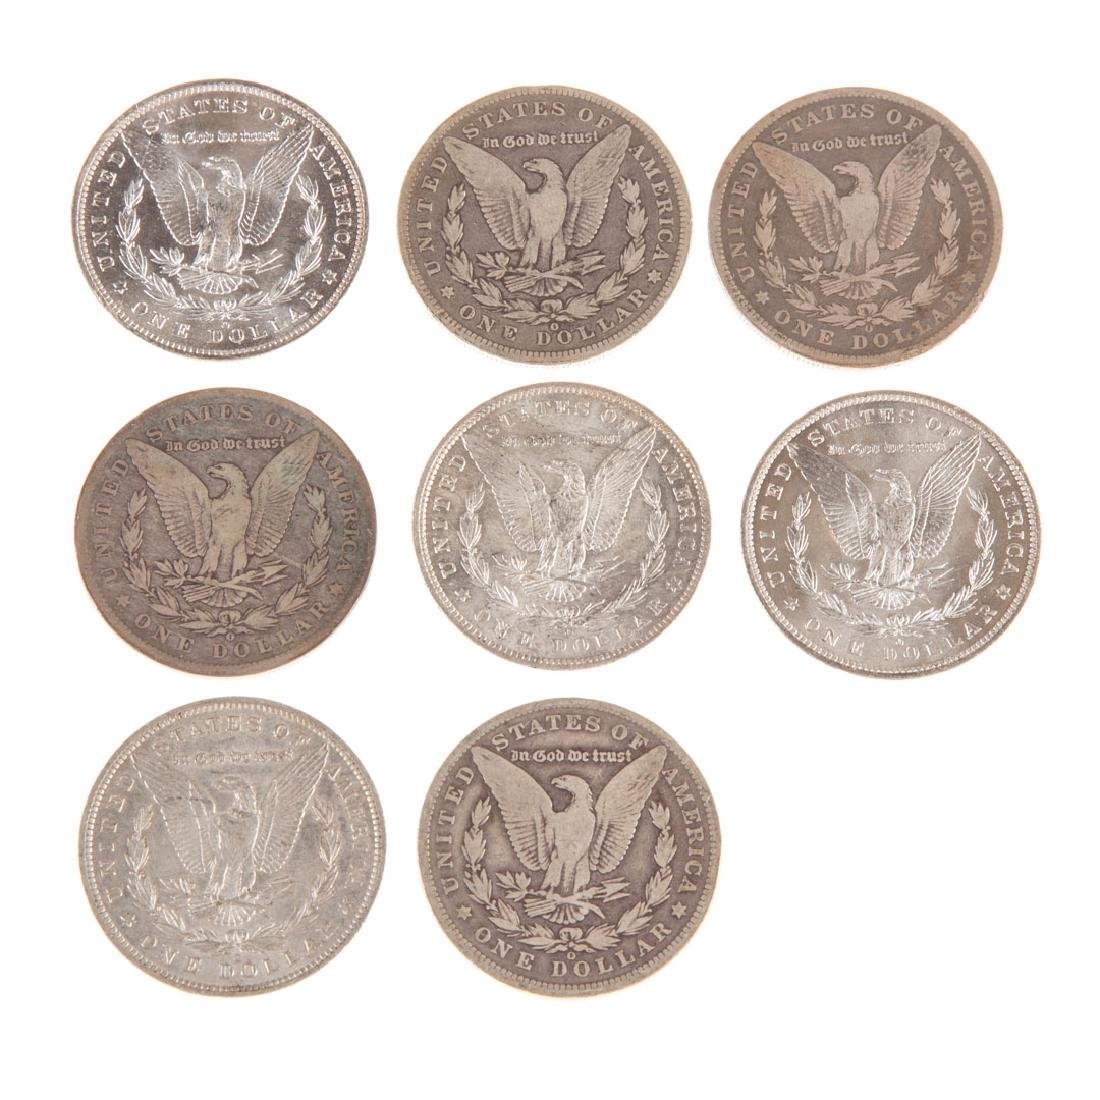 [US] 8 Morgan Silver Dollars from New Orleans - 2